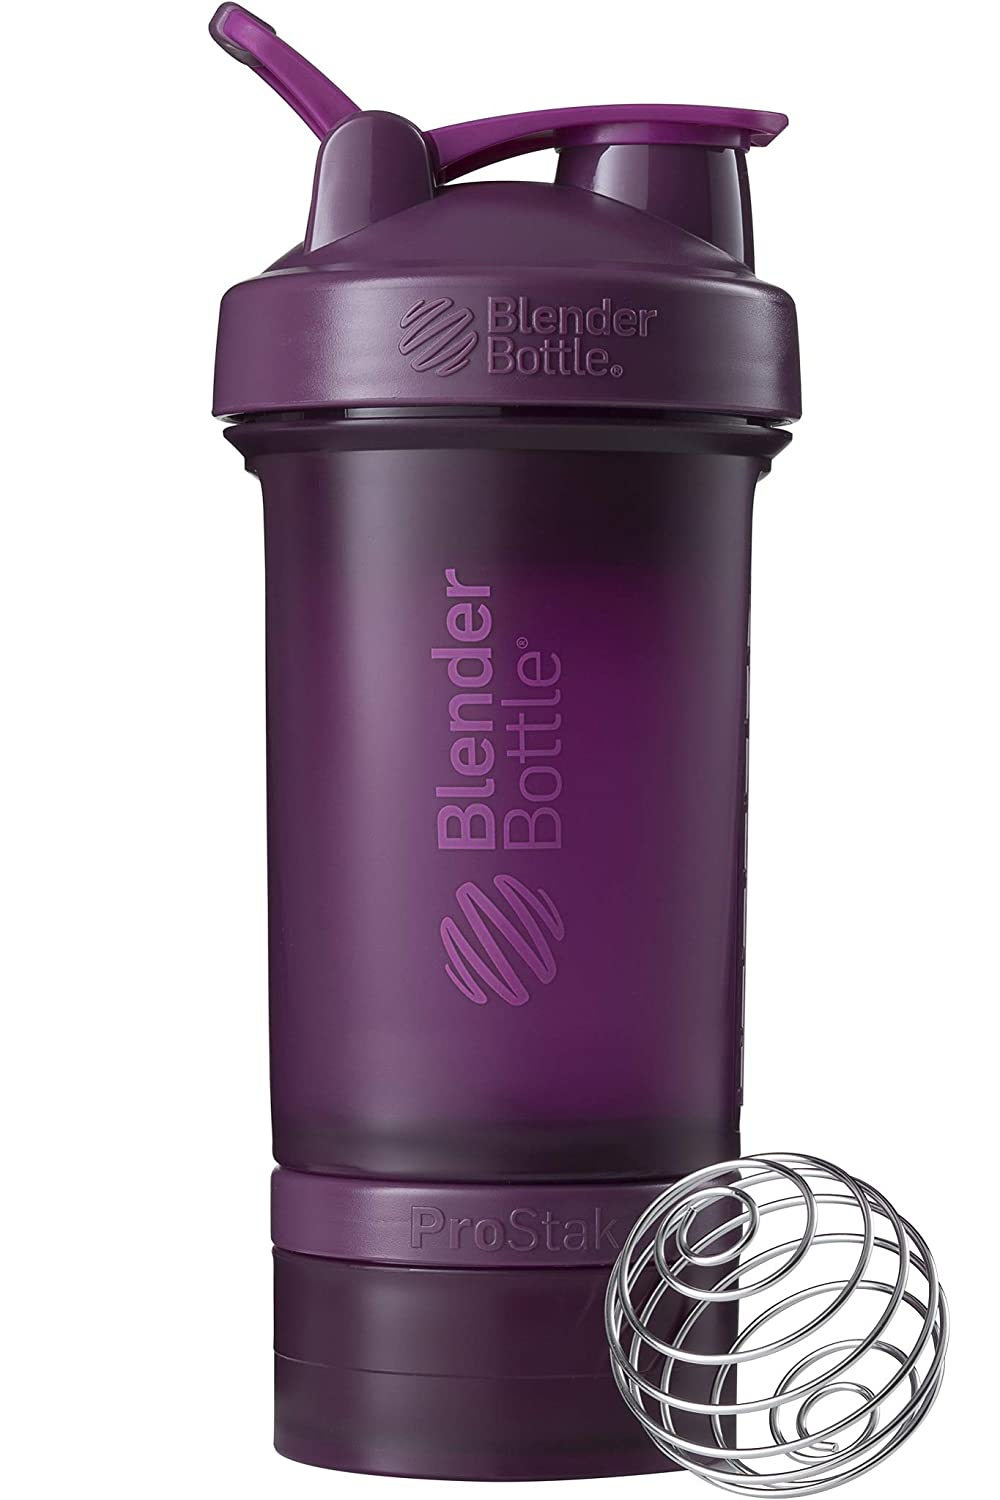 BlenderBottle ProStak System with 22-Ounce Bottle and Twist n' Lock Storage, Plum